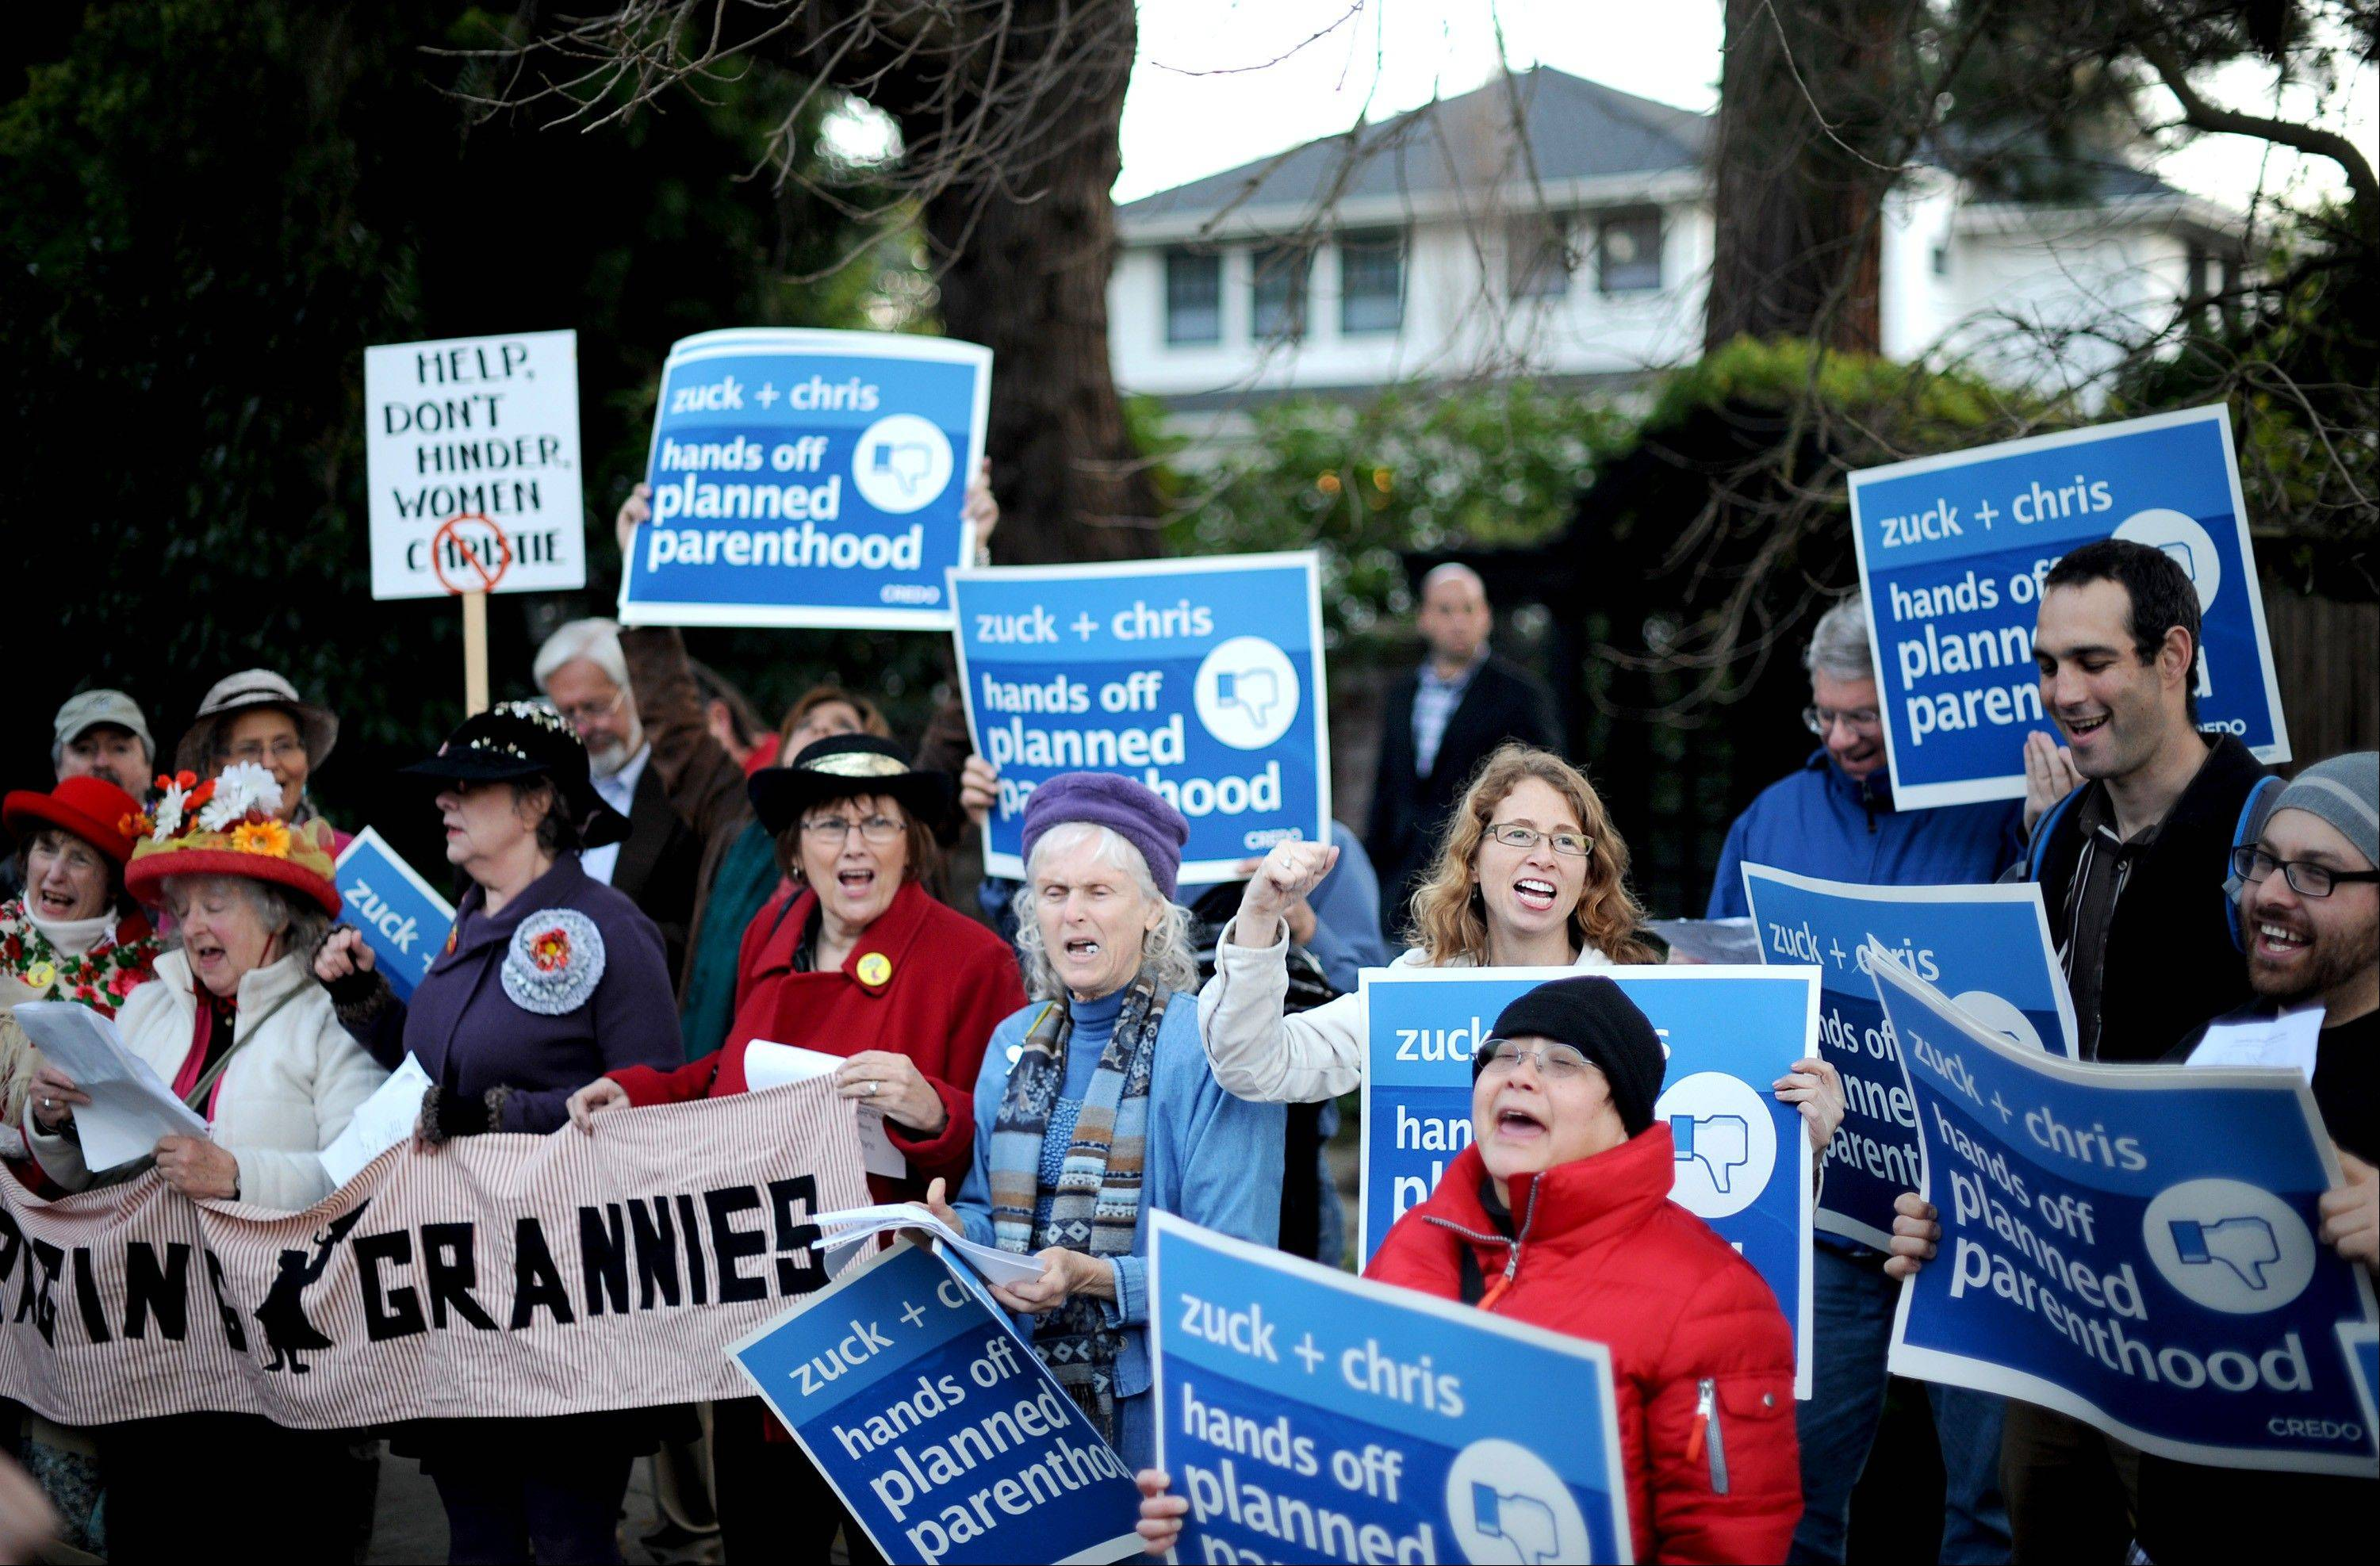 Protesters chant Wednesday outside the home of Mark Zuckerberg, chief executive officer and founder of Facebook Inc., seen in background, in Palo Alto, California. Facebook says it was the target of hackers but no user information was compromised during the attack.